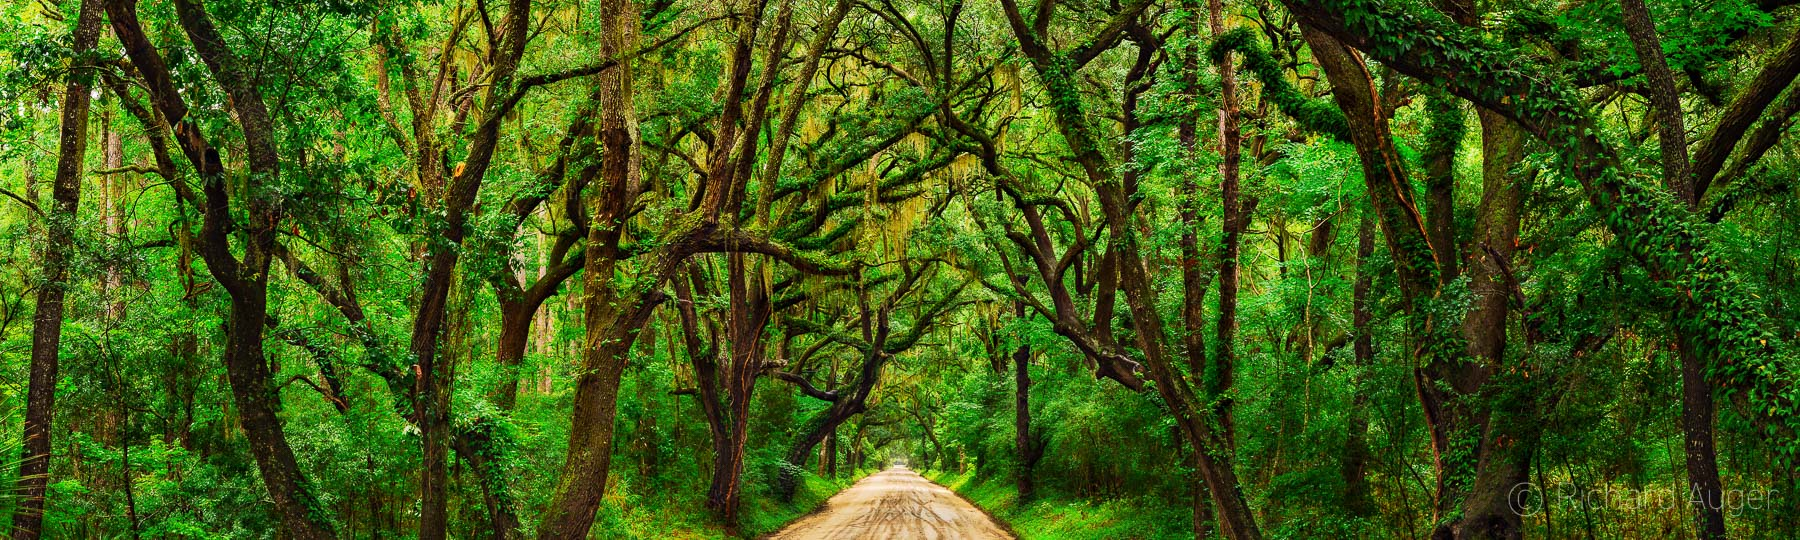 Botany Bay Road, Edisto Island, Tunnel of Oaks, South Carolina, Canopy, Panorama